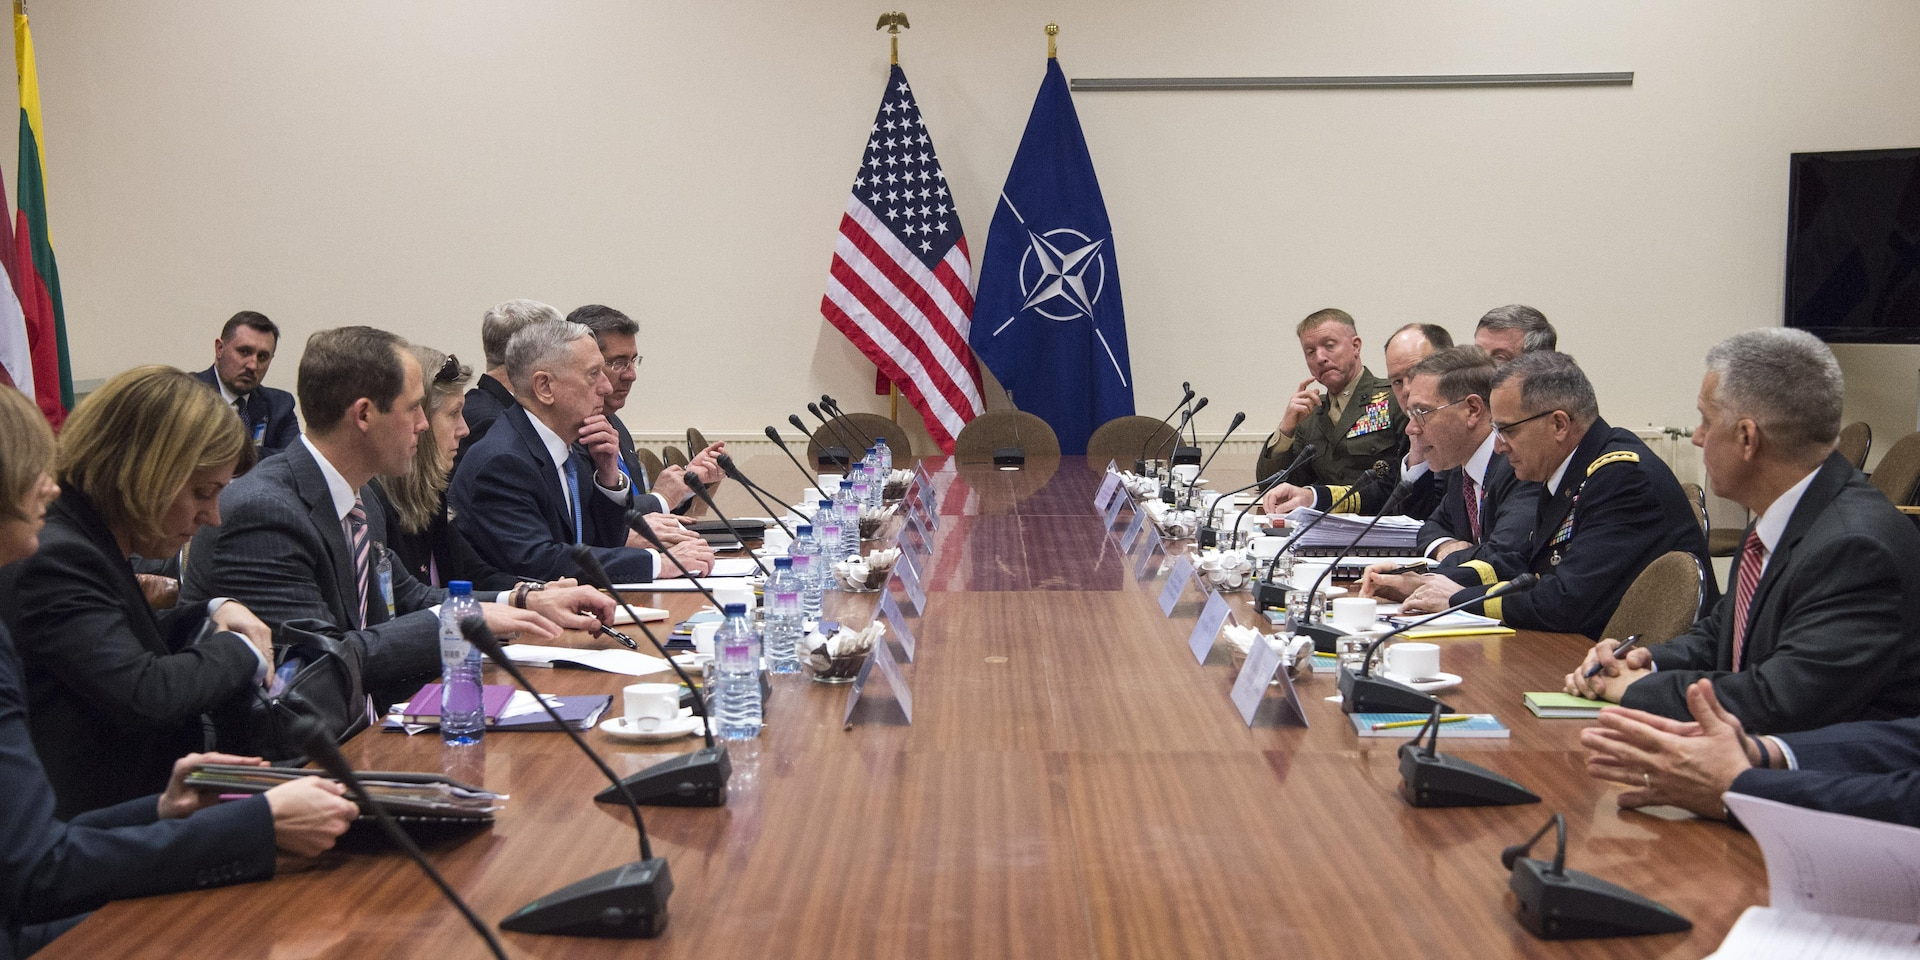 Defense Secretary Jim Mattis meets with members of the U.S. mission at NATO headquarters in Brussels, Feb. 15, 2017. DoD photo by U.S. Air Force Tech. Sgt. Brigitte N. Brantley